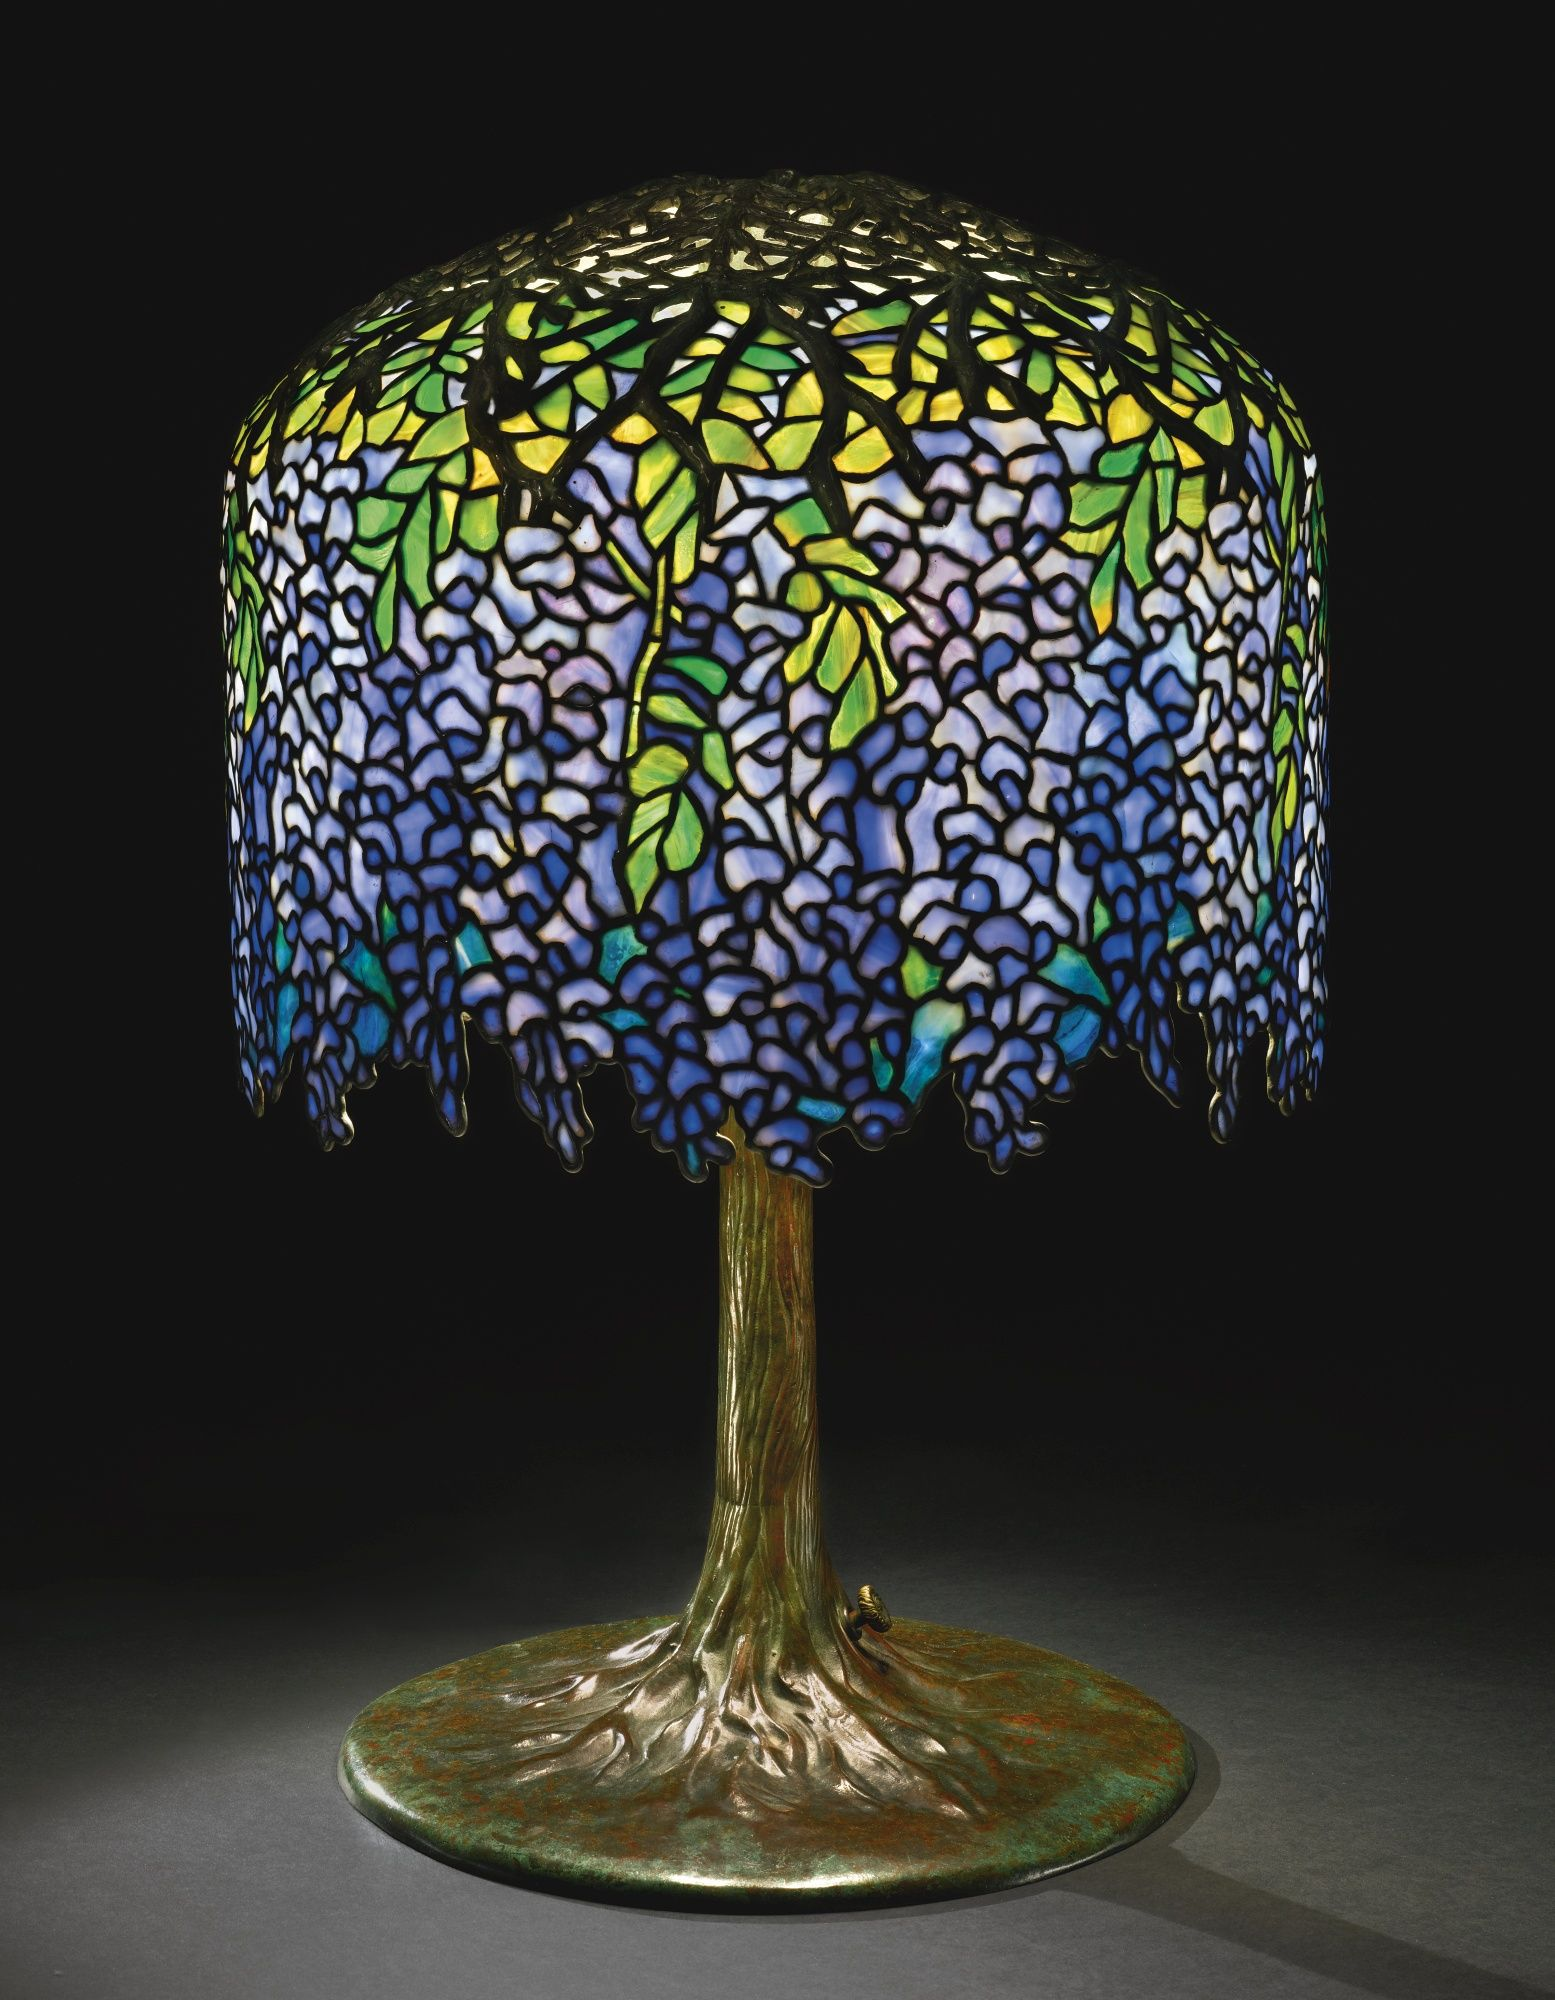 lamps louis comfort tiffany leaded glass stained glass lamp sets glass. Black Bedroom Furniture Sets. Home Design Ideas